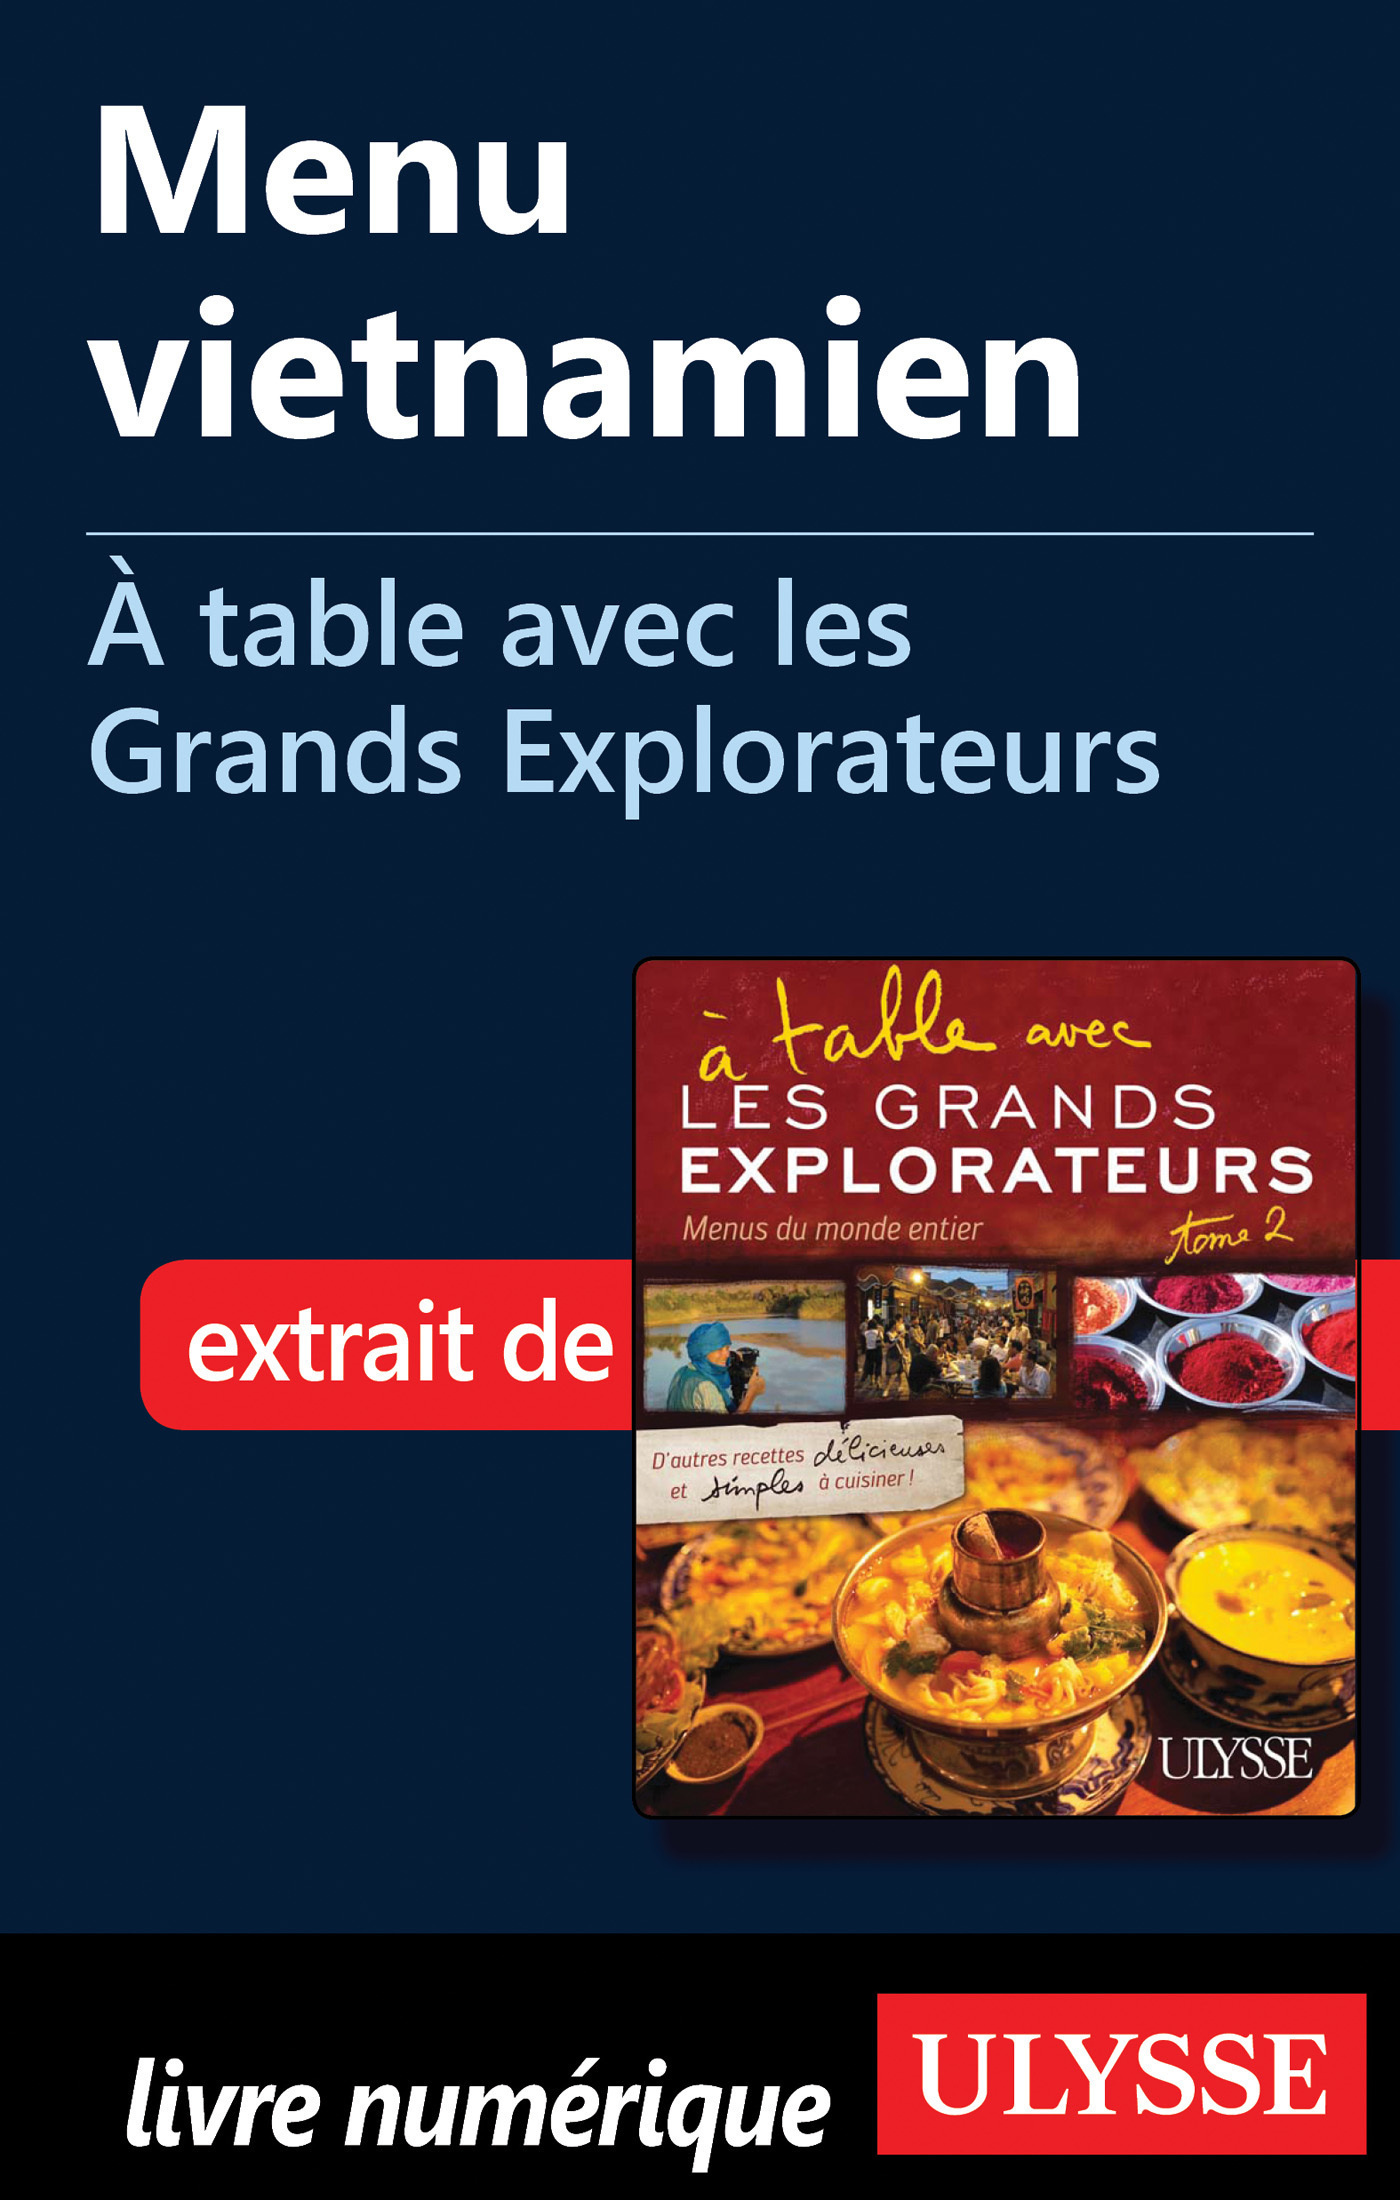 Menu vietnamien - A table avec les Grands Explorateurs